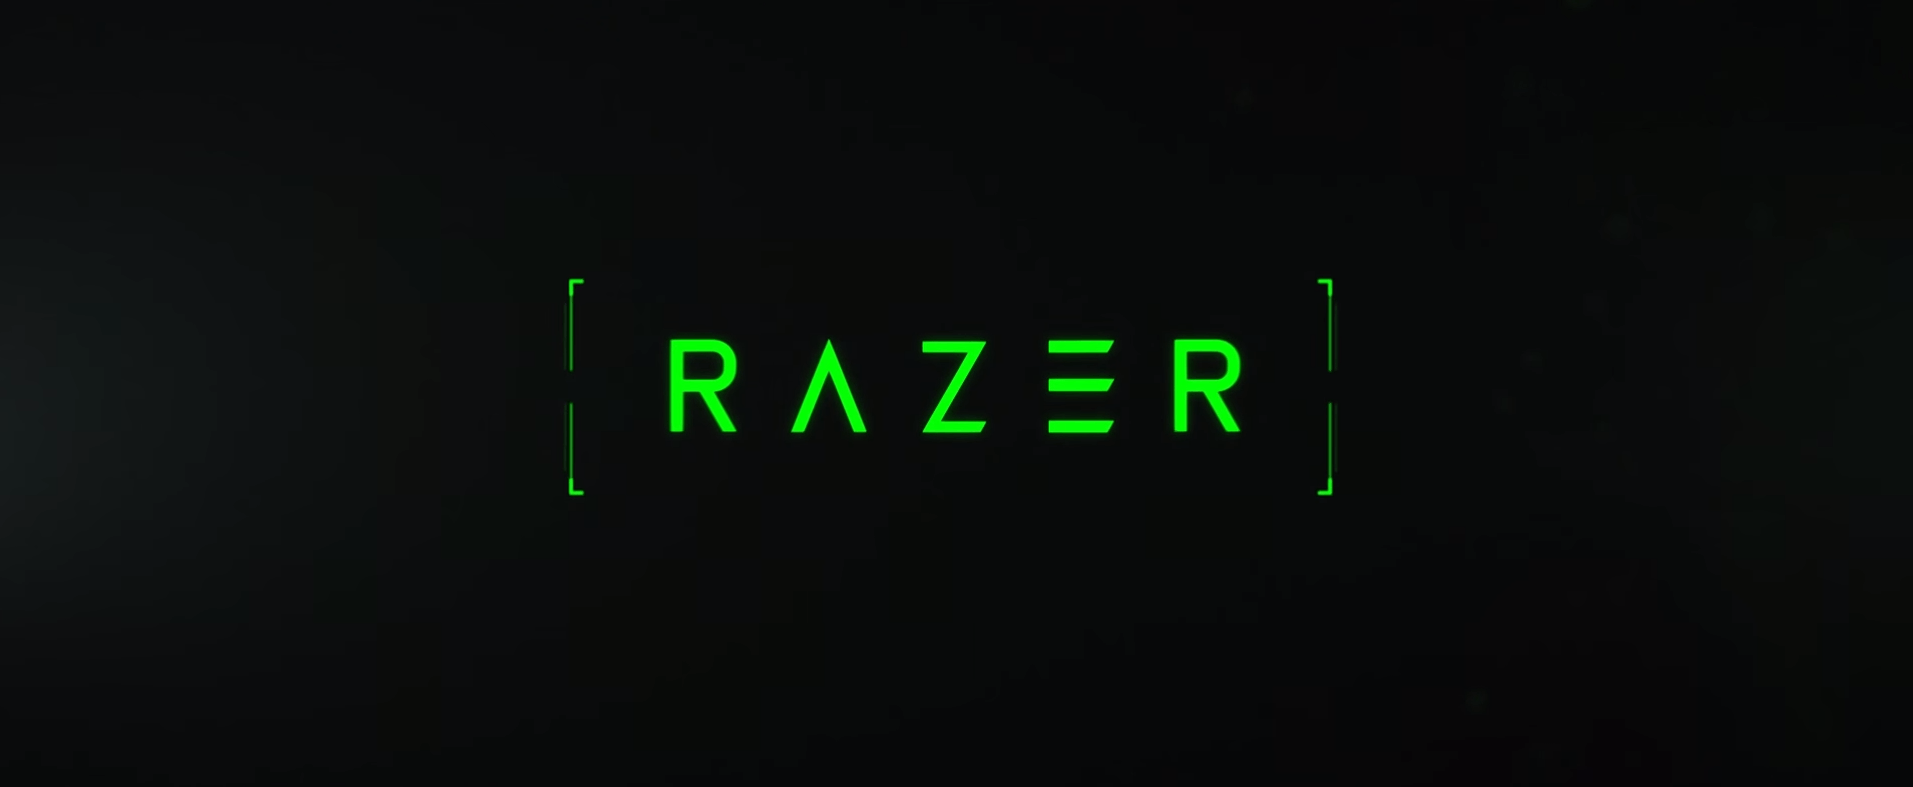 Razer targeting a $5 billion IPO Valuation